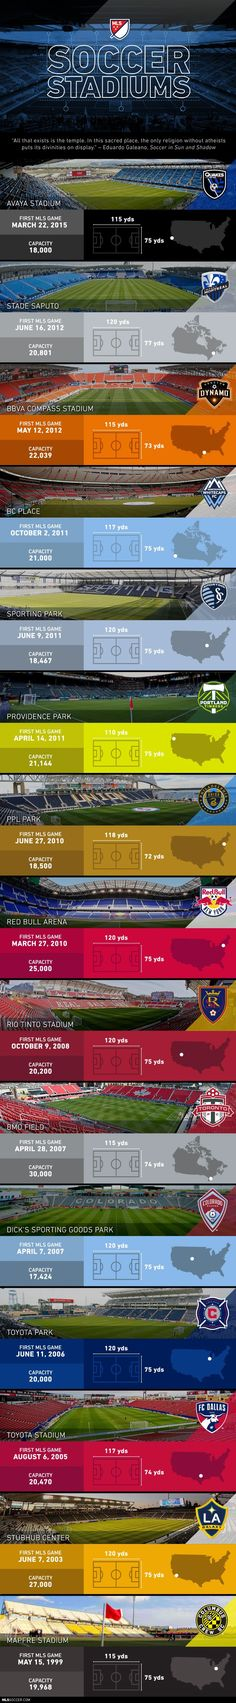 "The soccer-primary (I hate ""soccer-specific"") stadiums joining MLS ever since the Columbus Crew broke away from gargantuan gridiron stadiums in the late '90s and revitalized American sporting architecture."